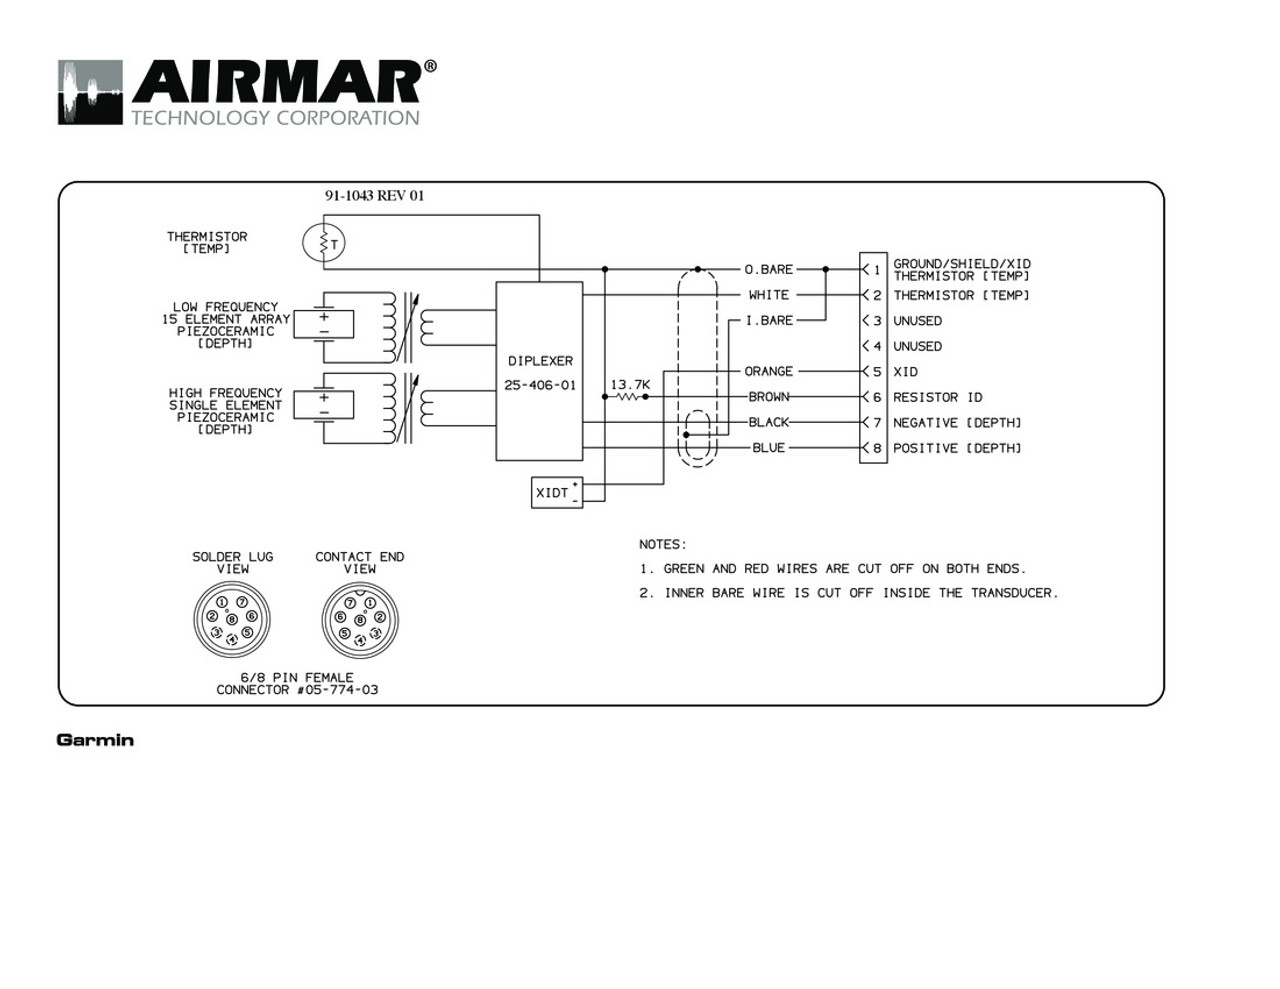 medium resolution of airmar wiring diagram garmin r99 8 pin d t blue bottle marine rh bluebottlemarine com garmin 3210